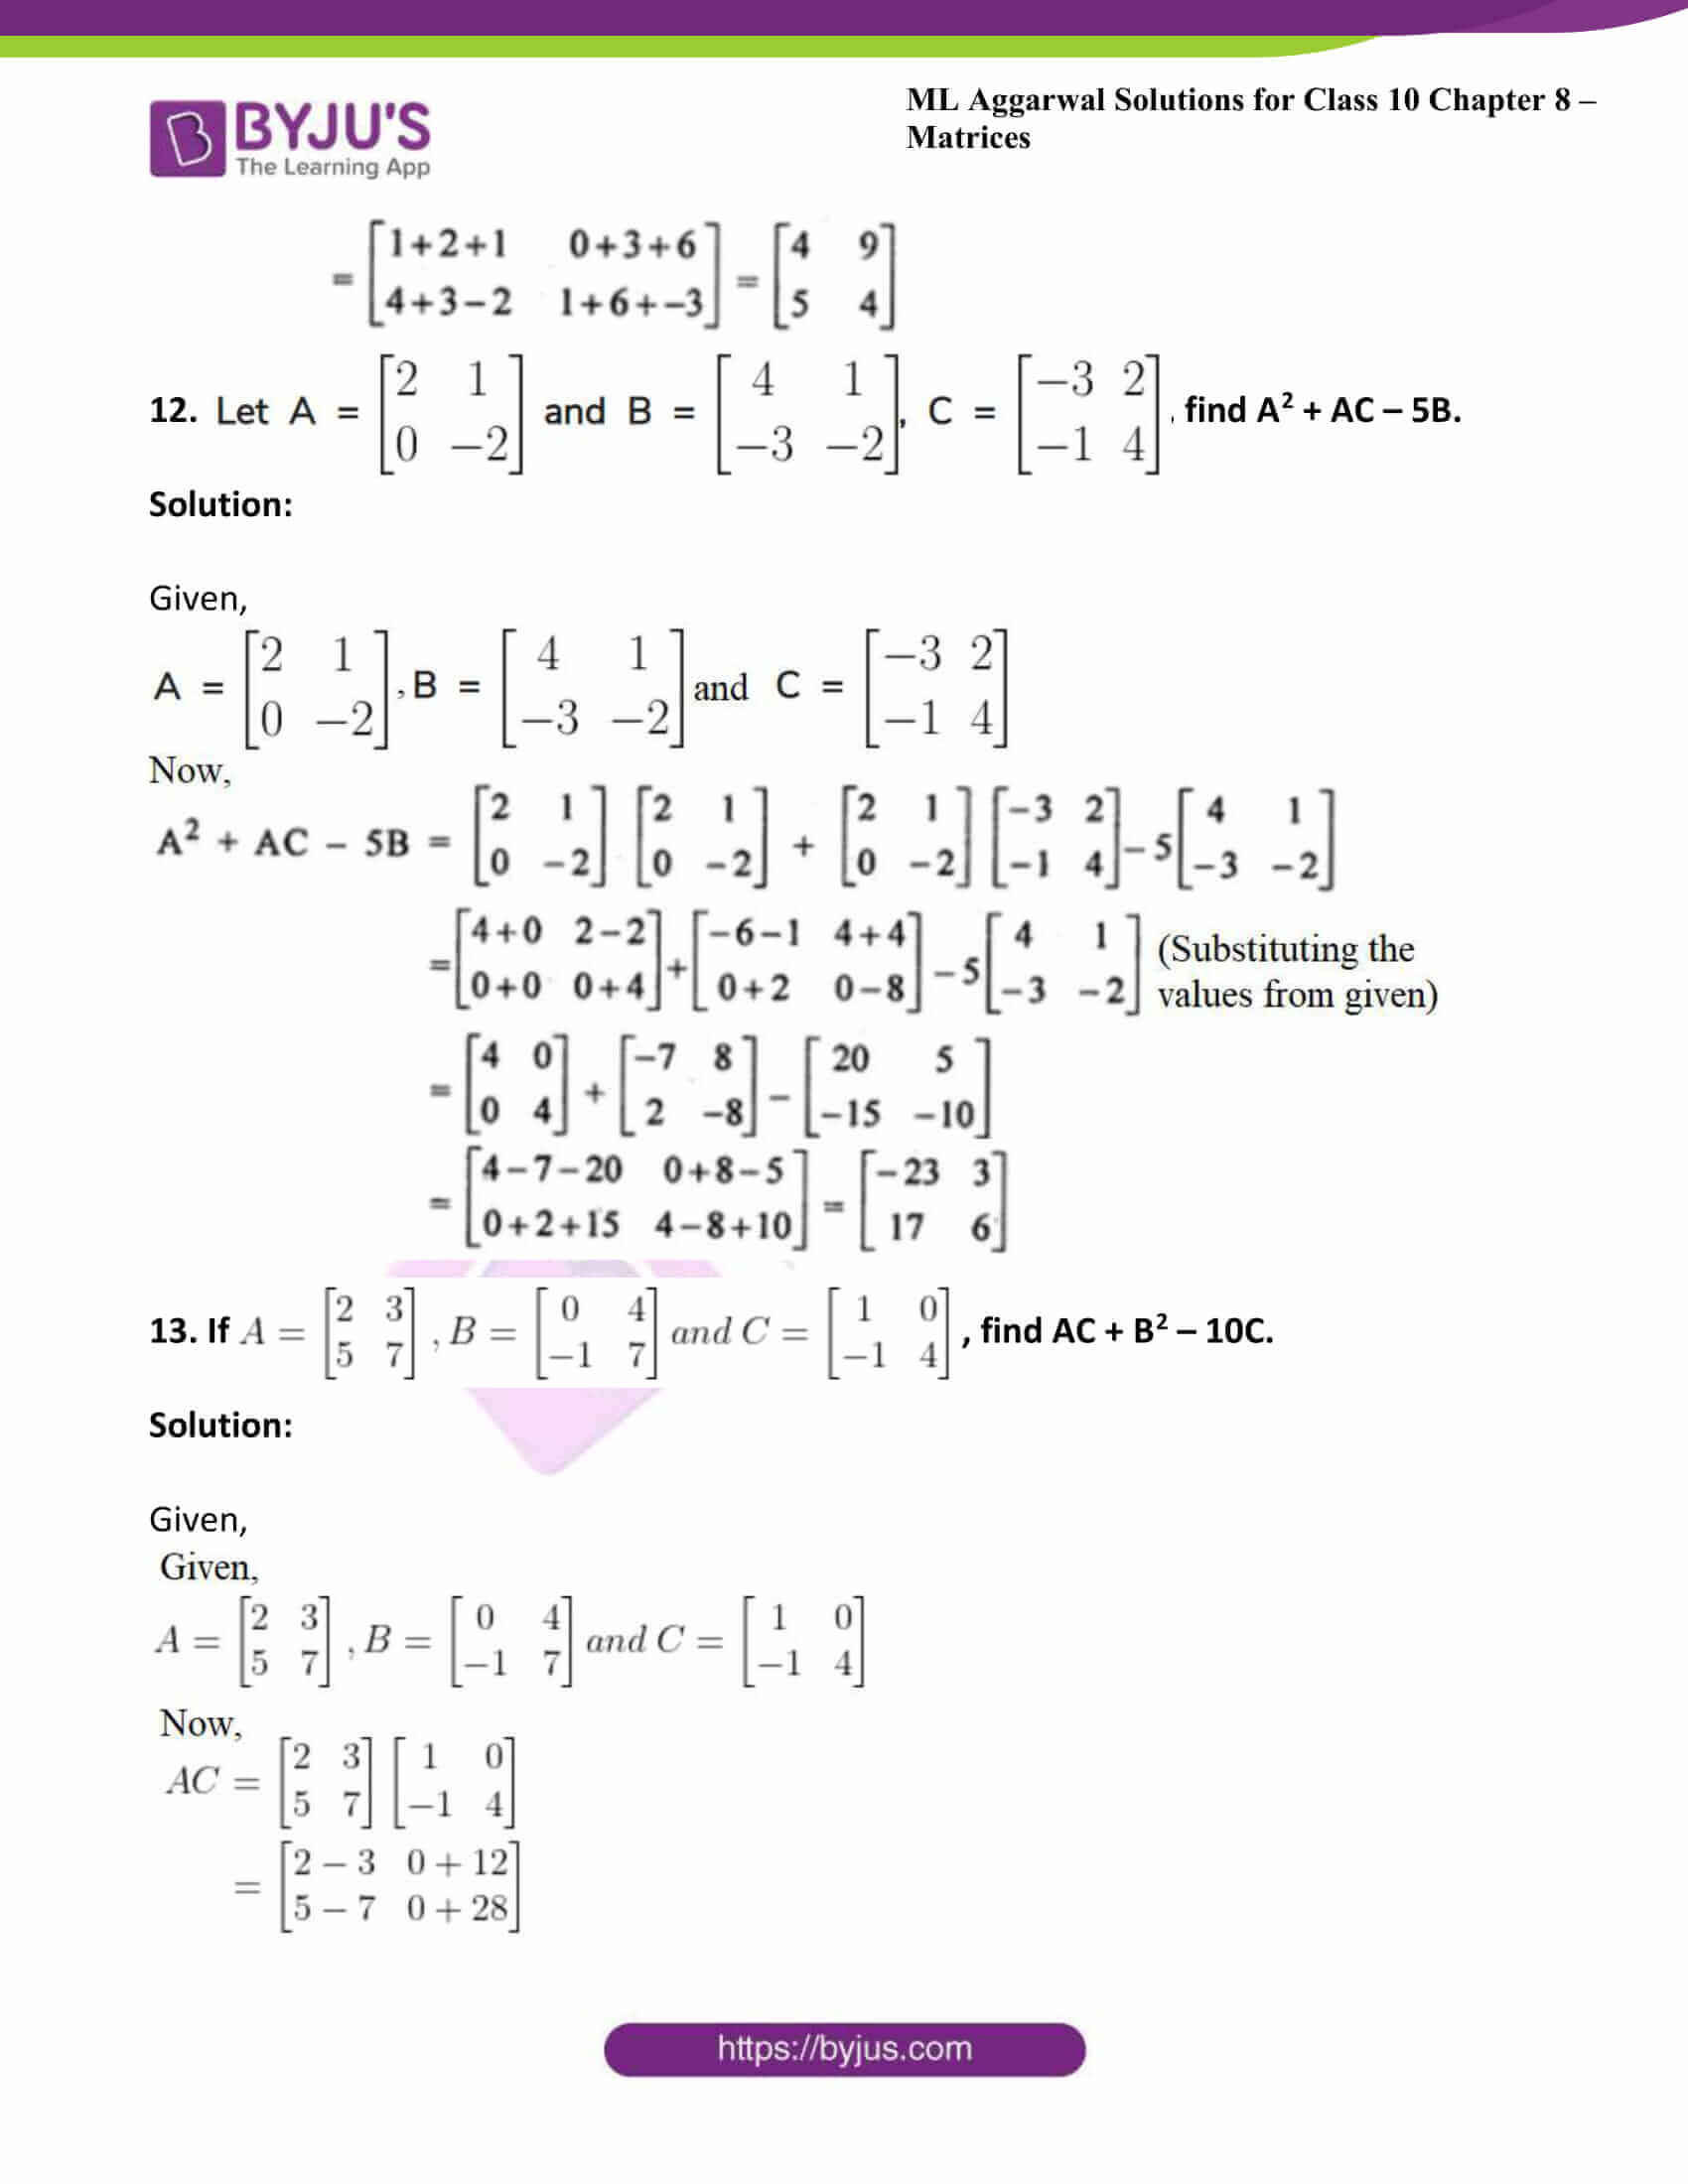 ml aggarwal solutions class 10 maths chapter 8 26